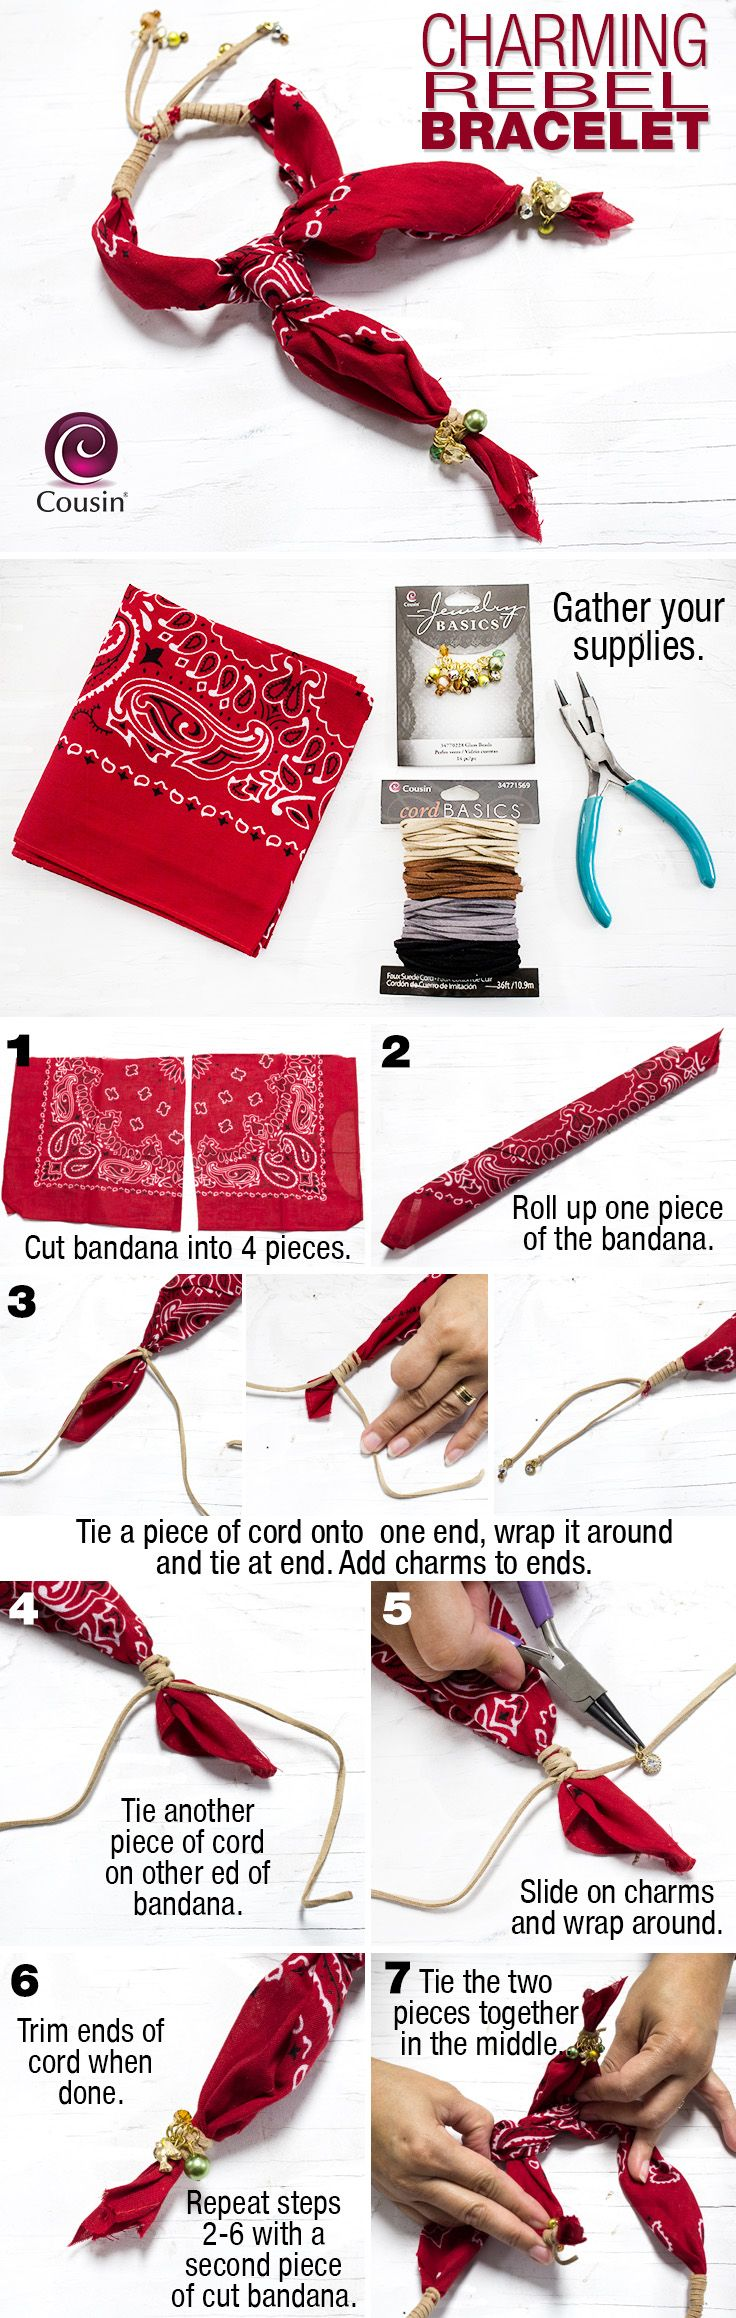 DIY bandana bracelets - unique uses for bandannas - how to make your own bandana bracelet - new ideas for friendship bracelets - rustic country chic fashion accessories